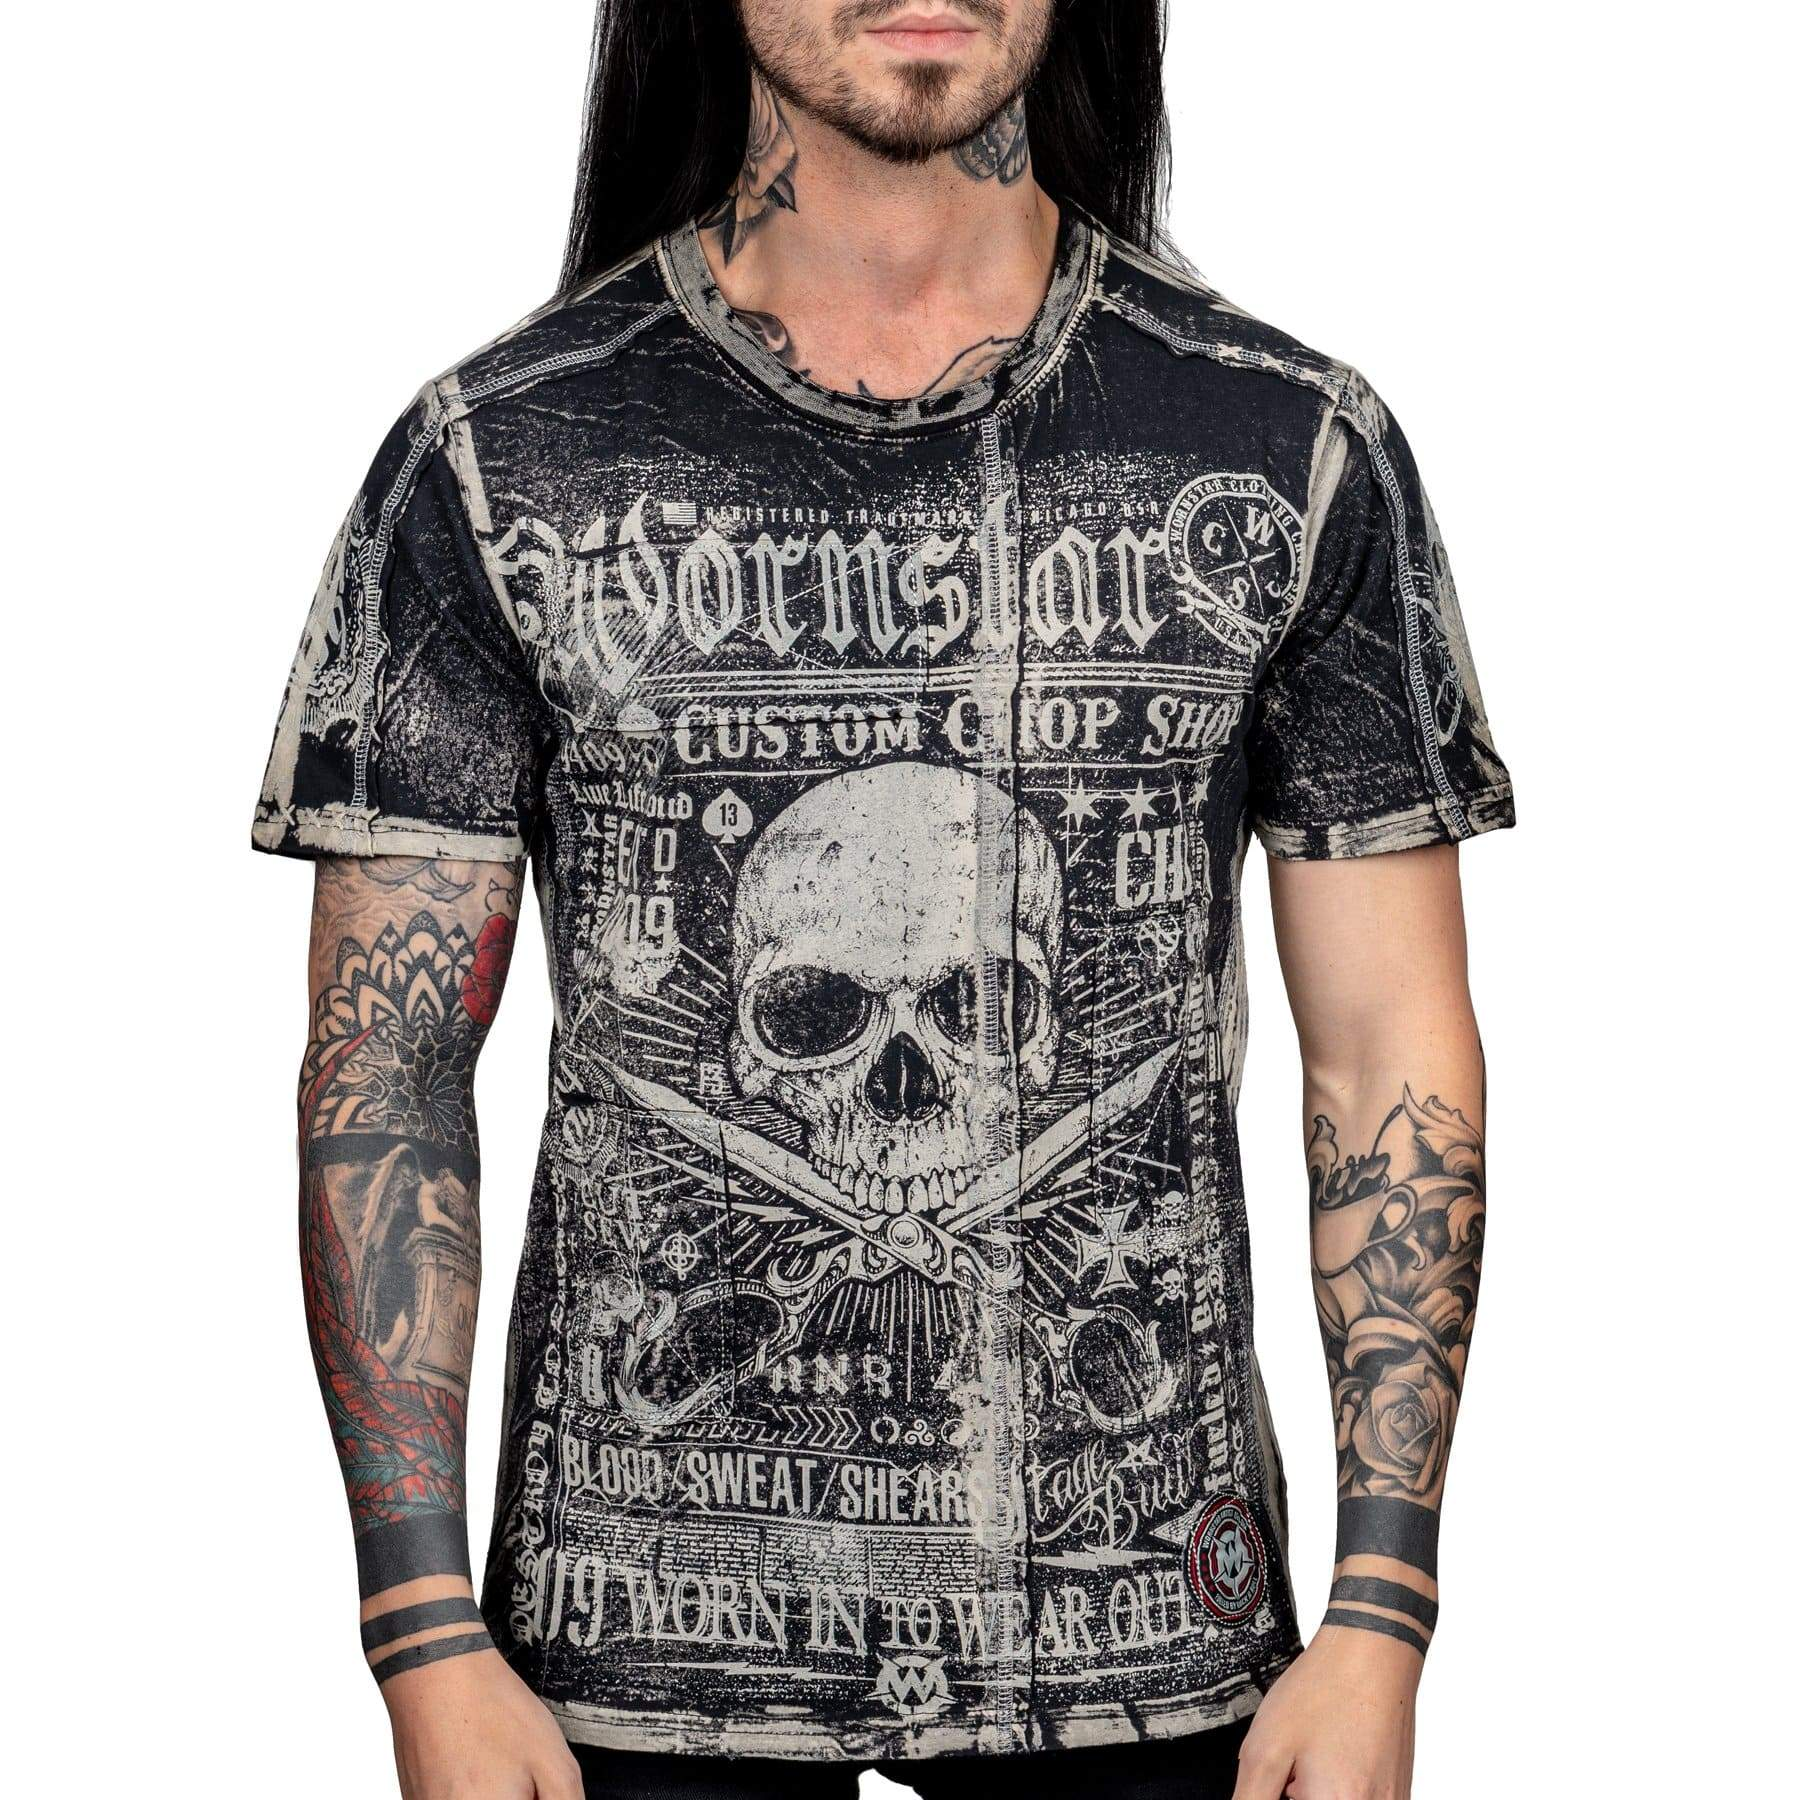 Wornstar Clothing Blood Sweat and Shears tee with printed skull scissors graphic.